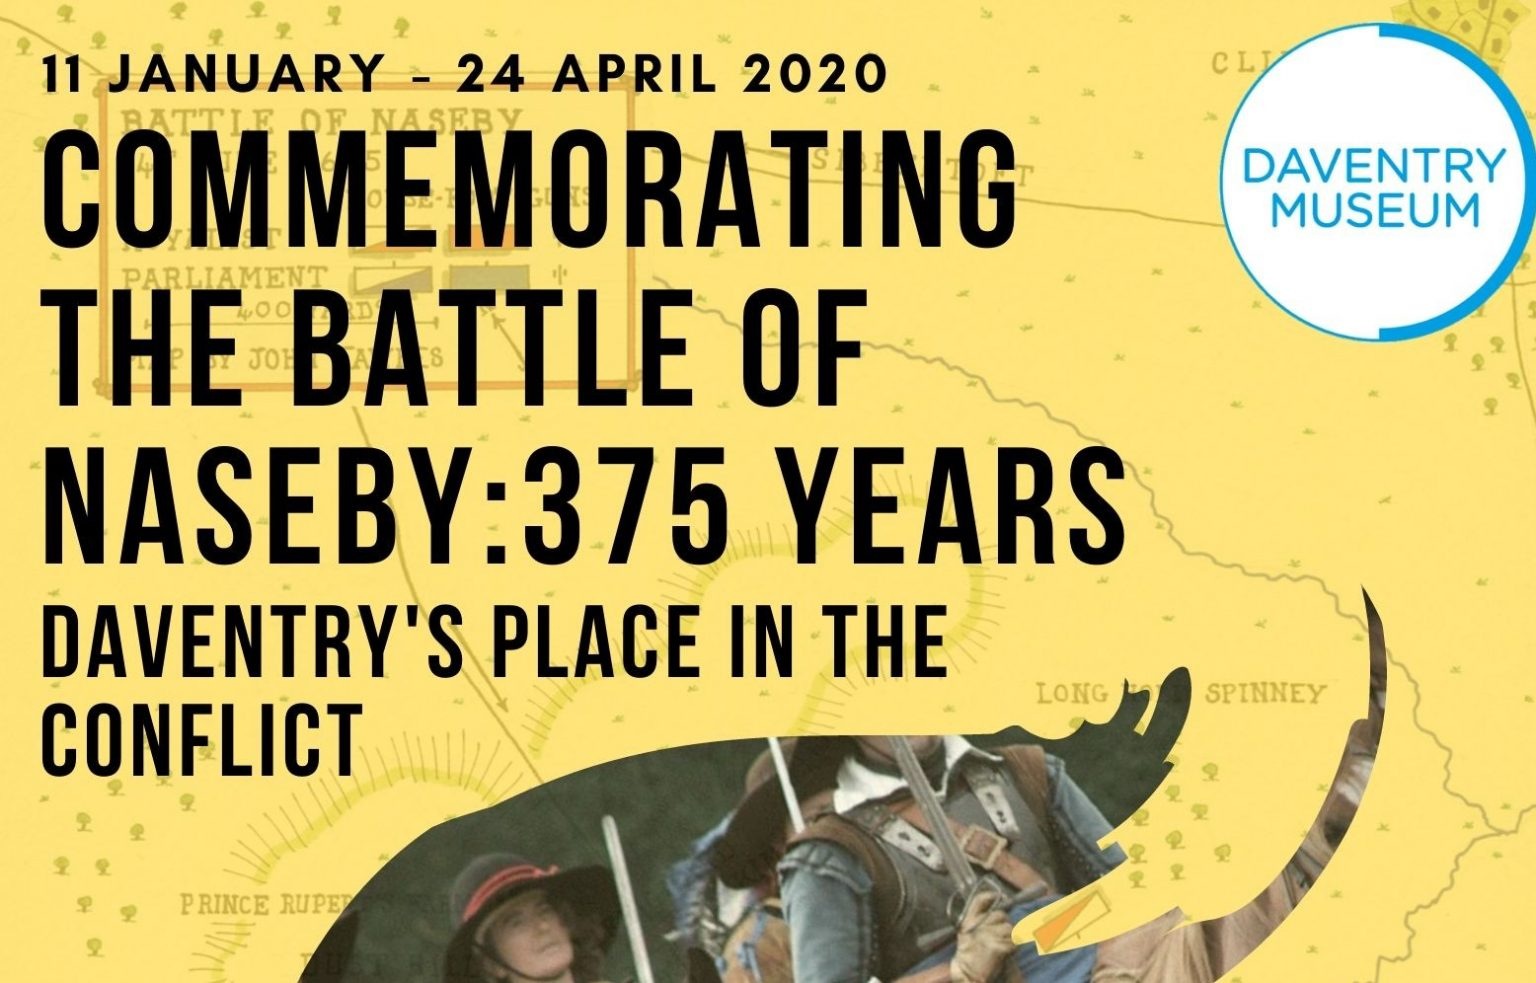 Image stating on 11th January to 24th April 2020, they will be commemorating the Battle of Naseby: 375 years. Picture shows people in period outfits.